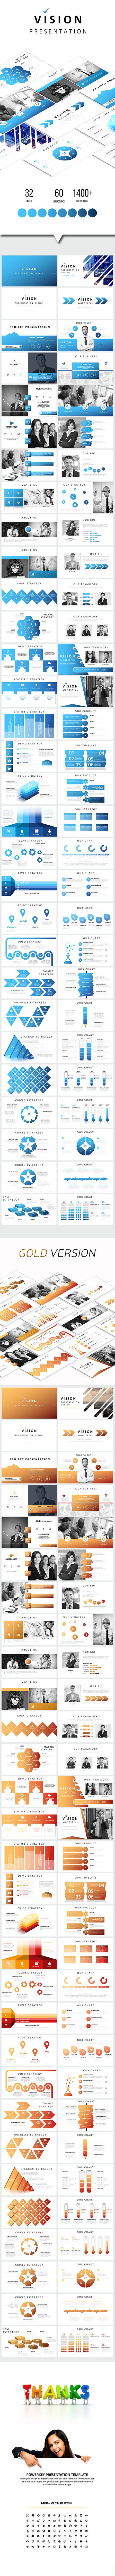 VISION - Multipurpose PowerPoint Template - Business PowerPoint Templates